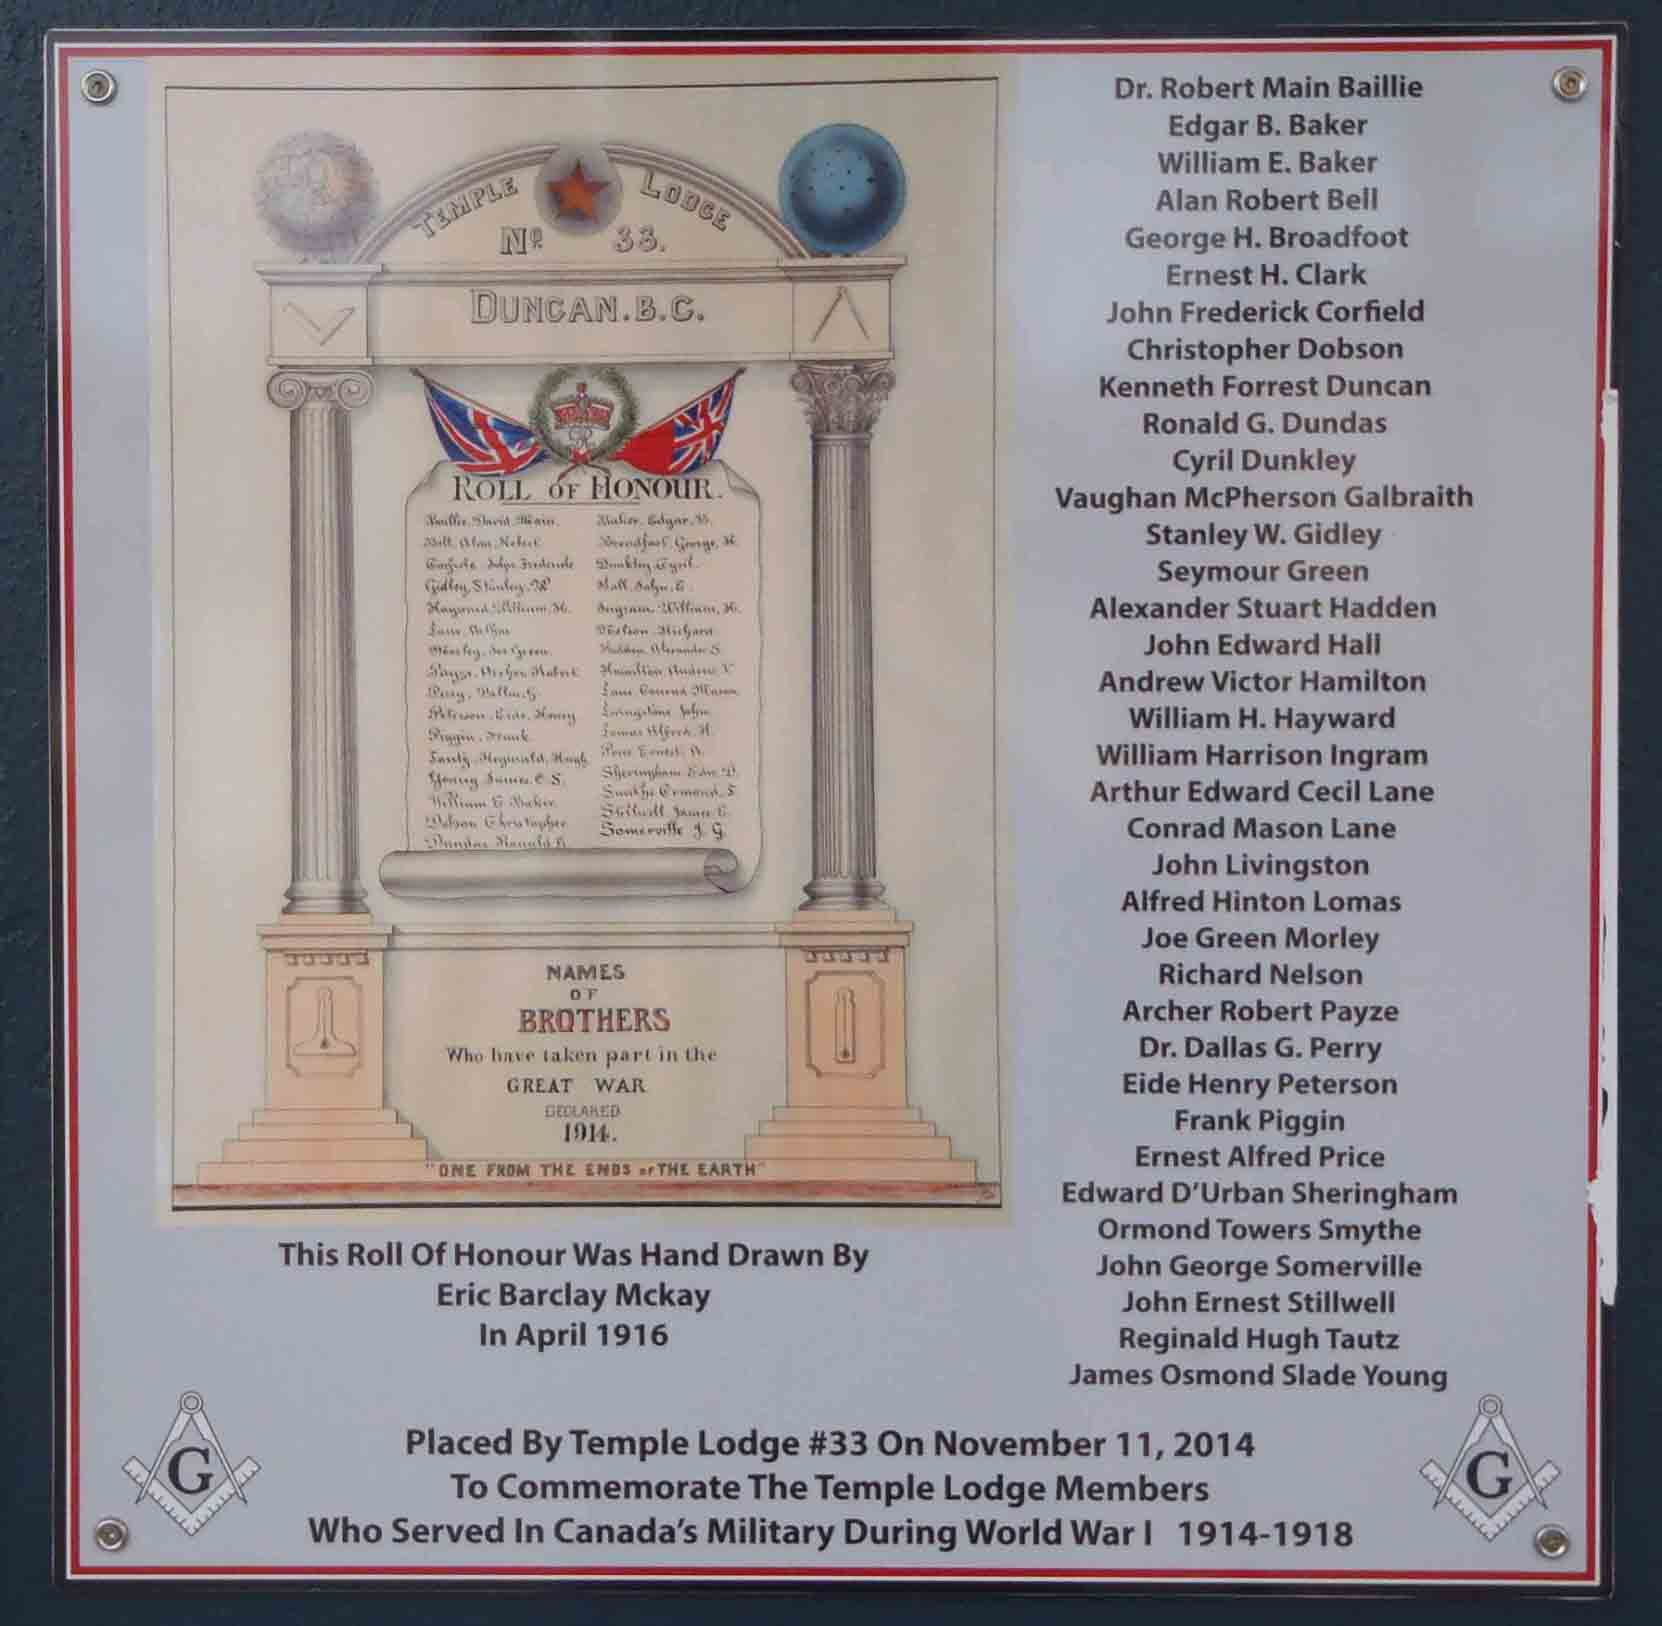 Plaque at the entrance of Duncan Masonic Temple commemorating the Temple Lodge First World War Veterans